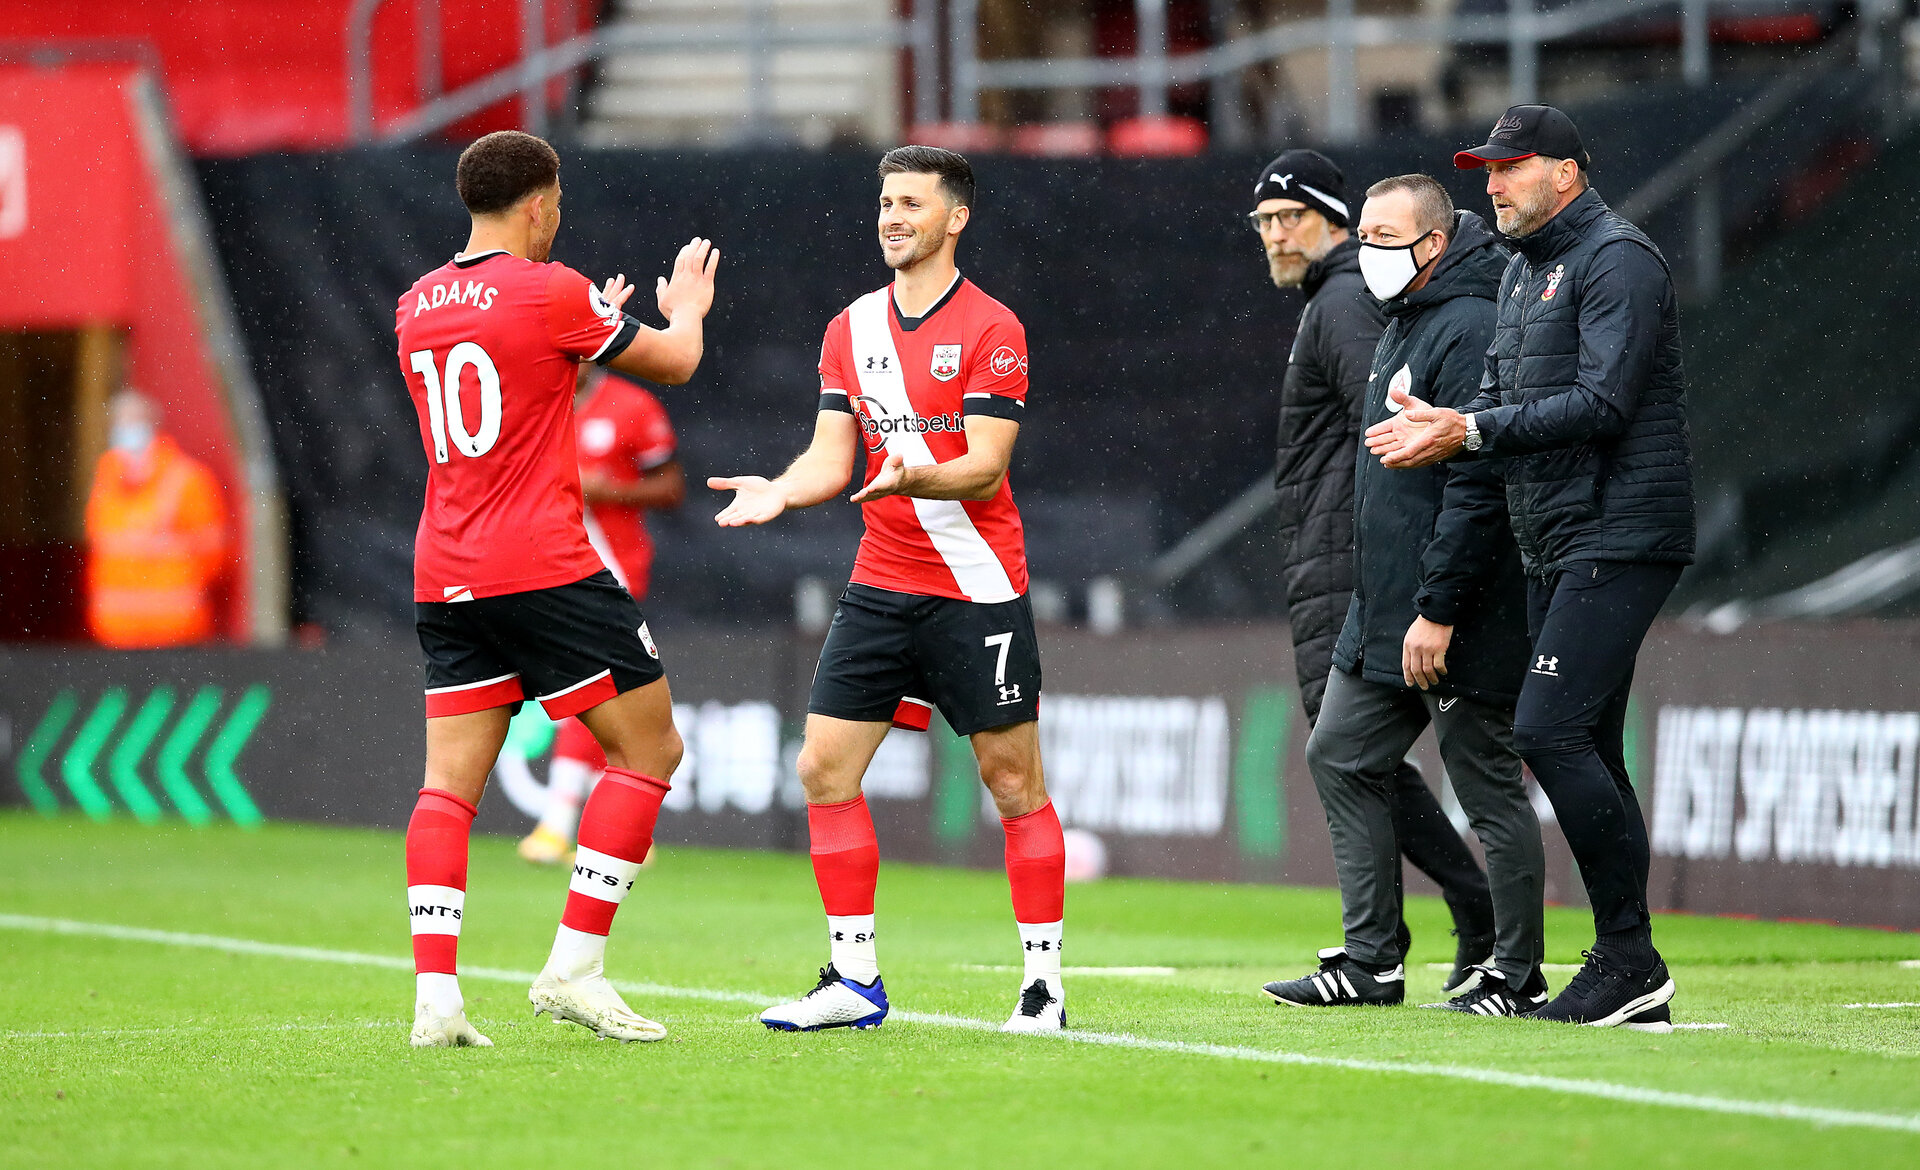 SOUTHAMPTON, ENGLAND - OCTOBER 04: Shane Long(R) of Southampton comes on for Ché Adams(L) during the Premier League match between Southampton and West Bromwich Albion at St Mary's Stadium on October 04, 2020 in Southampton, United Kingdom. Sporting stadiums around the UK remain under strict restrictions due to the Coronavirus Pandemic as Government social distancing laws prohibit fans inside venues resulting in games being played behind closed doors. (Photo by Matt Watson/Southampton FC via Getty Images)